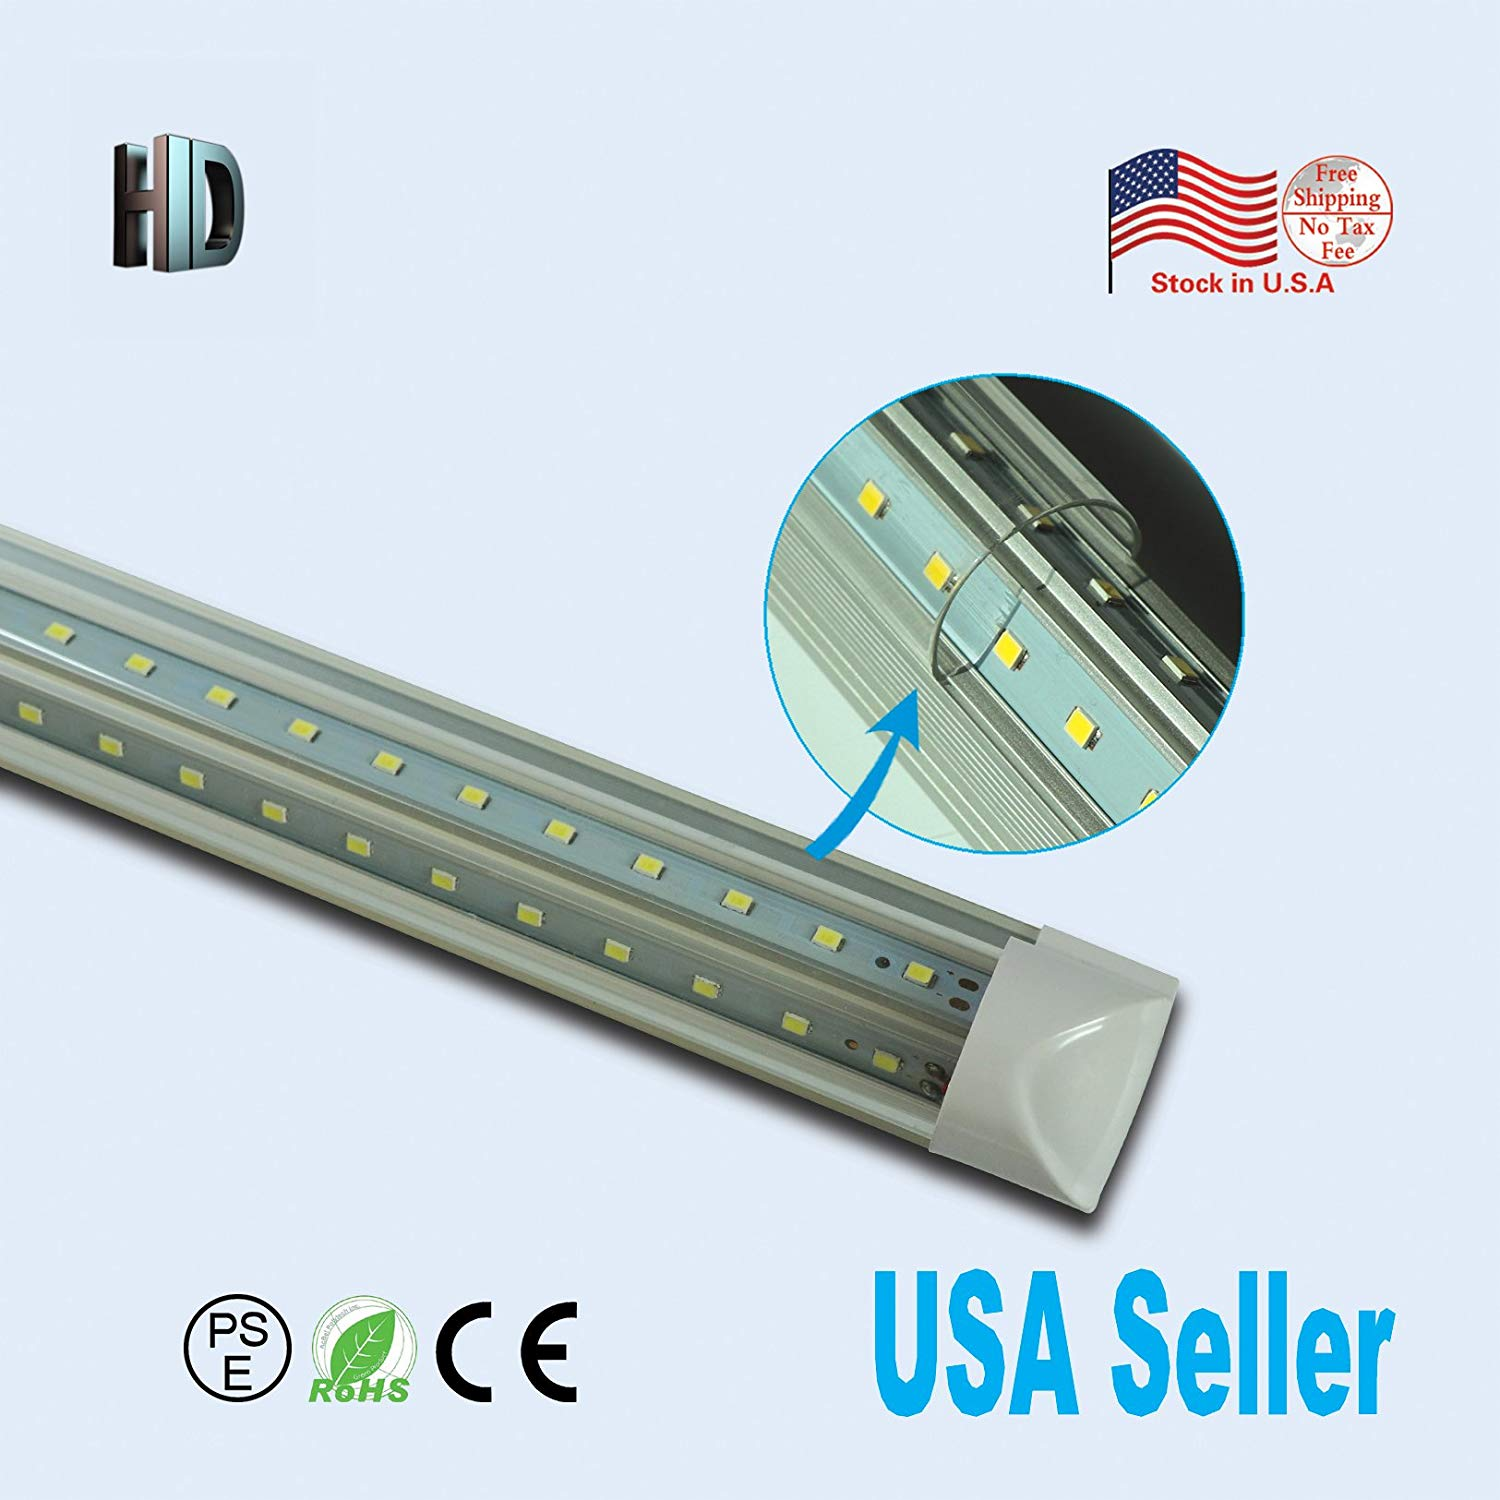 6 PACK LED T8 Integrated v shaped tube 5ft 30W AC110-277V LED Bulb tube Lamp clear cover with 5700K LED Light tube SMD2835 chip high brightness T8 integrated v shaped tube lamp